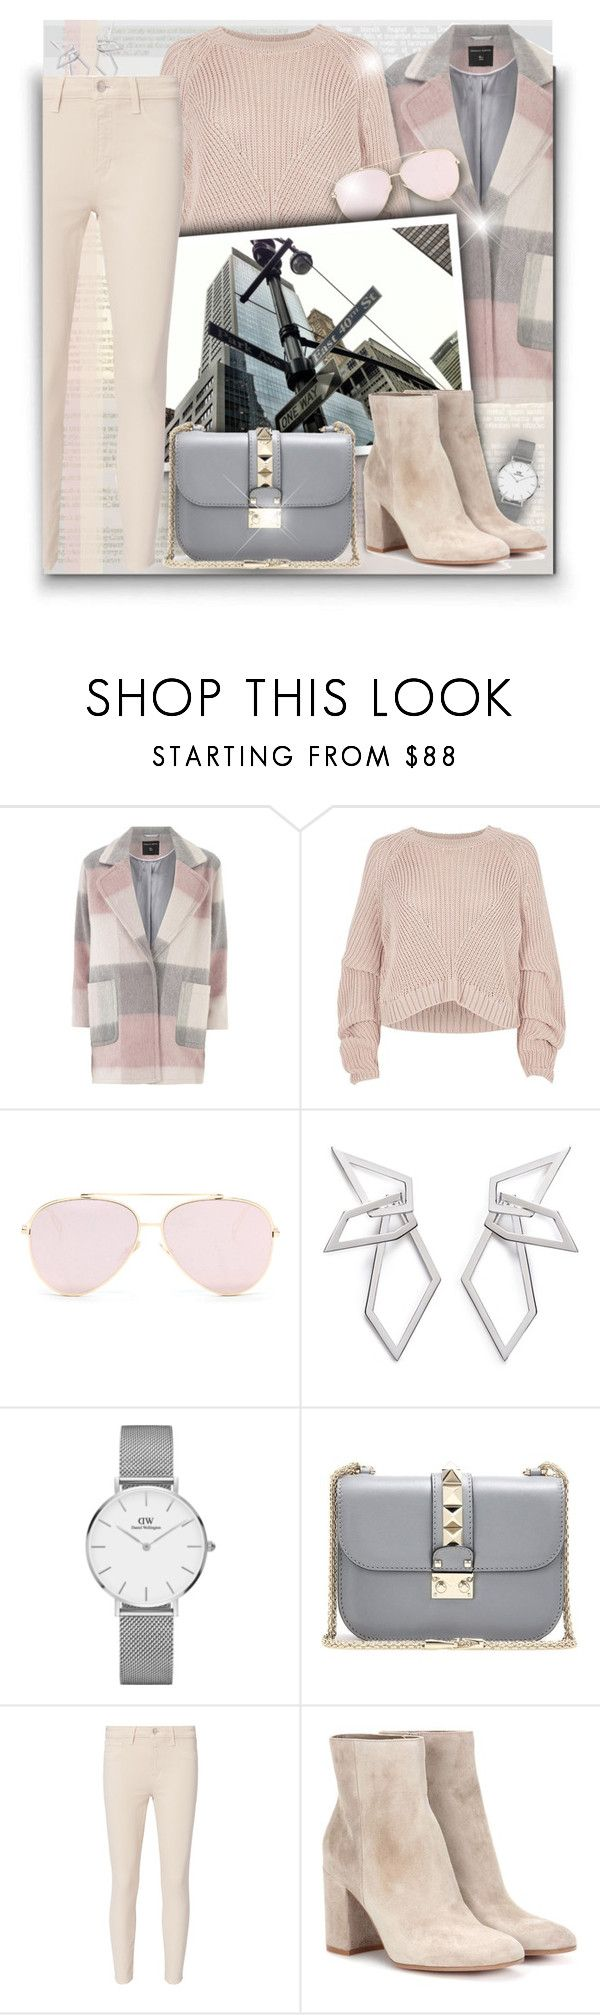 """What to Wear in NY!"" by asia-12 ❤ liked on Polyvore featuring Dorothy Perkins, River Island, W. Britt, Daniel Wellington, Valentino, L'Agence, Gianvito Rossi and NYFW"